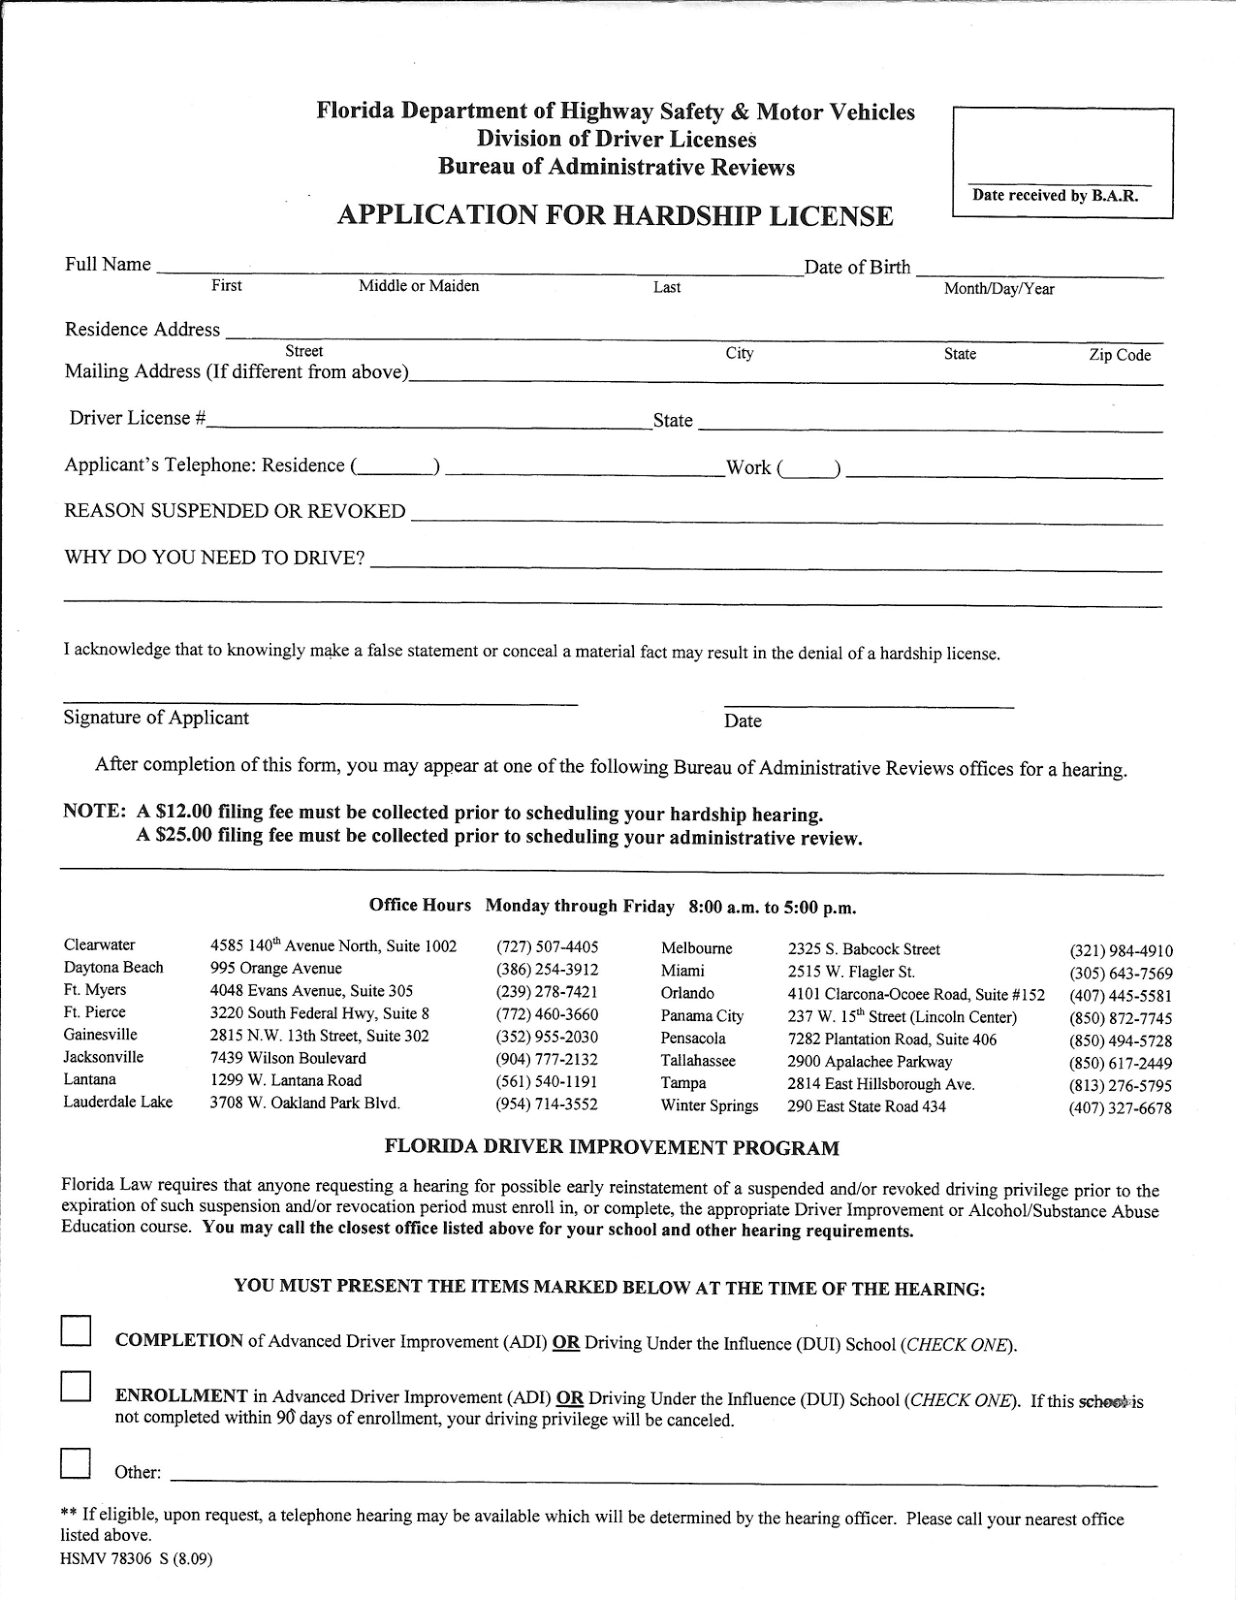 Hardship License Request at the Bureau of Administrative Reviews